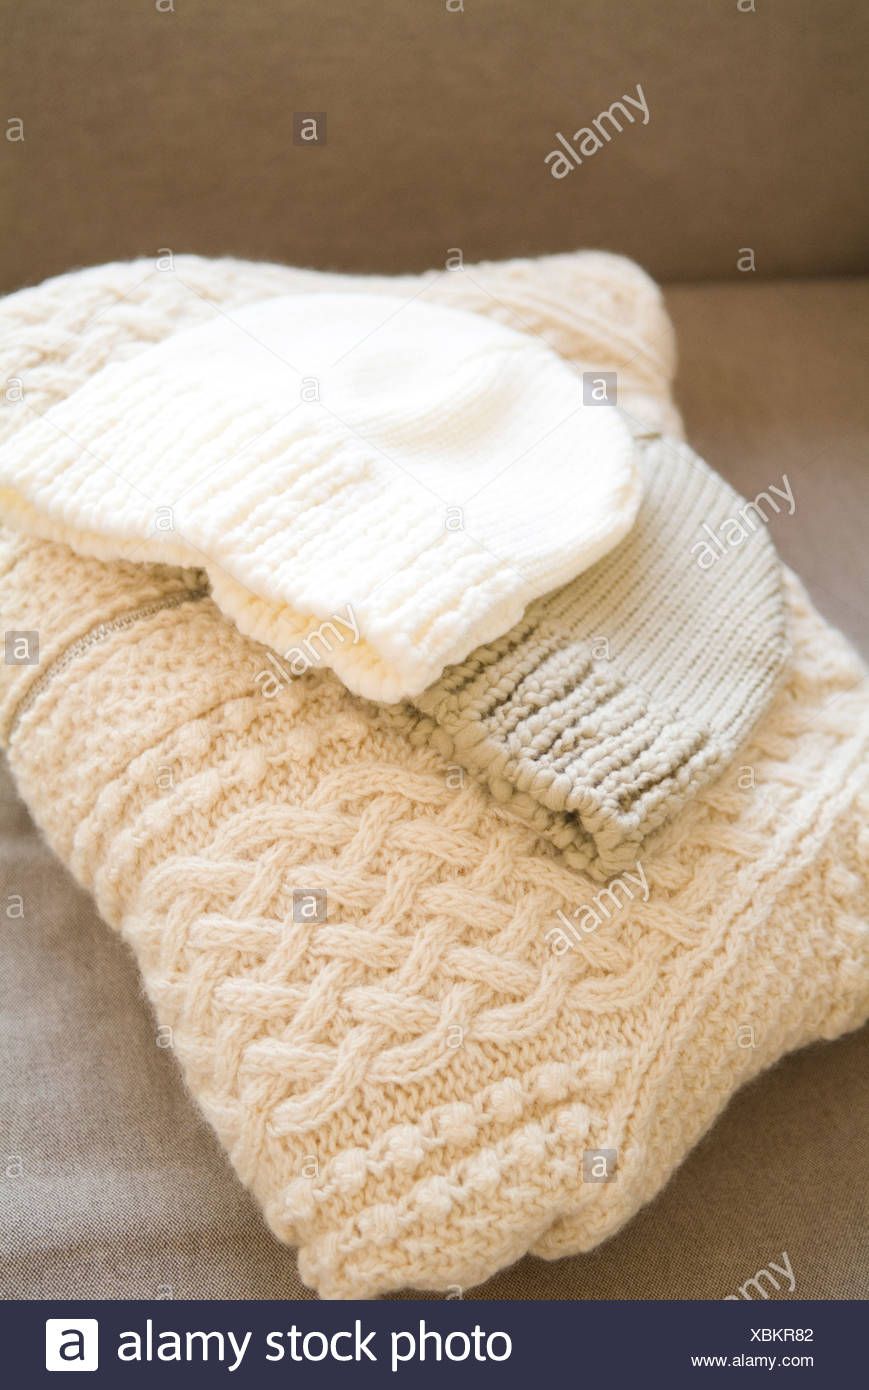 Knit hats and sweater - Stock Image